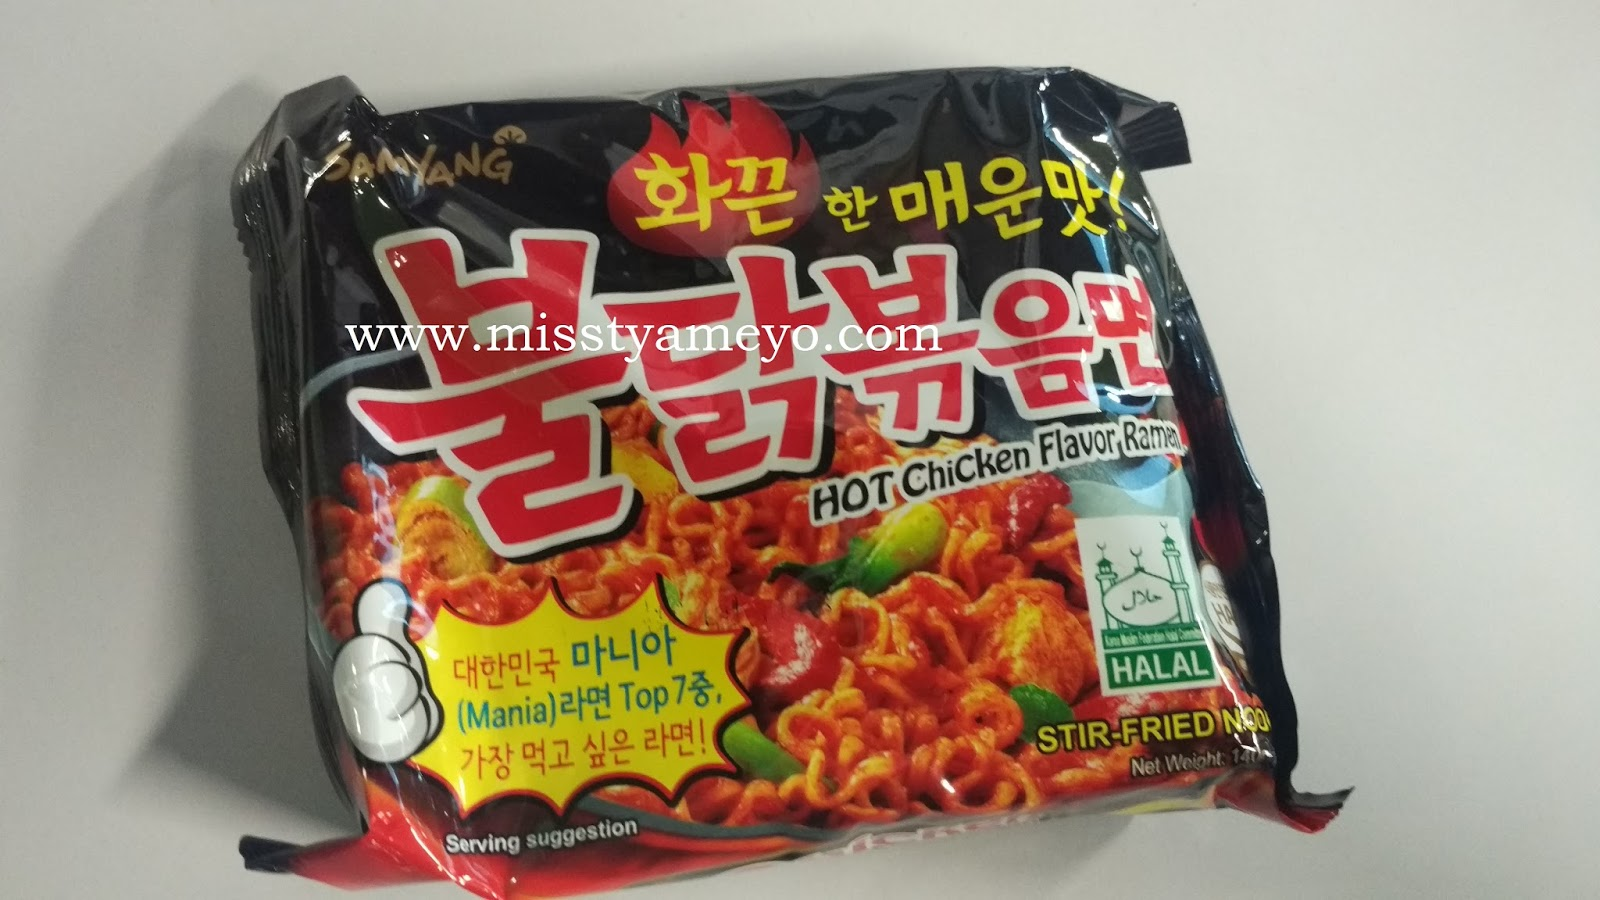 samyang ramen hot chicken ramen